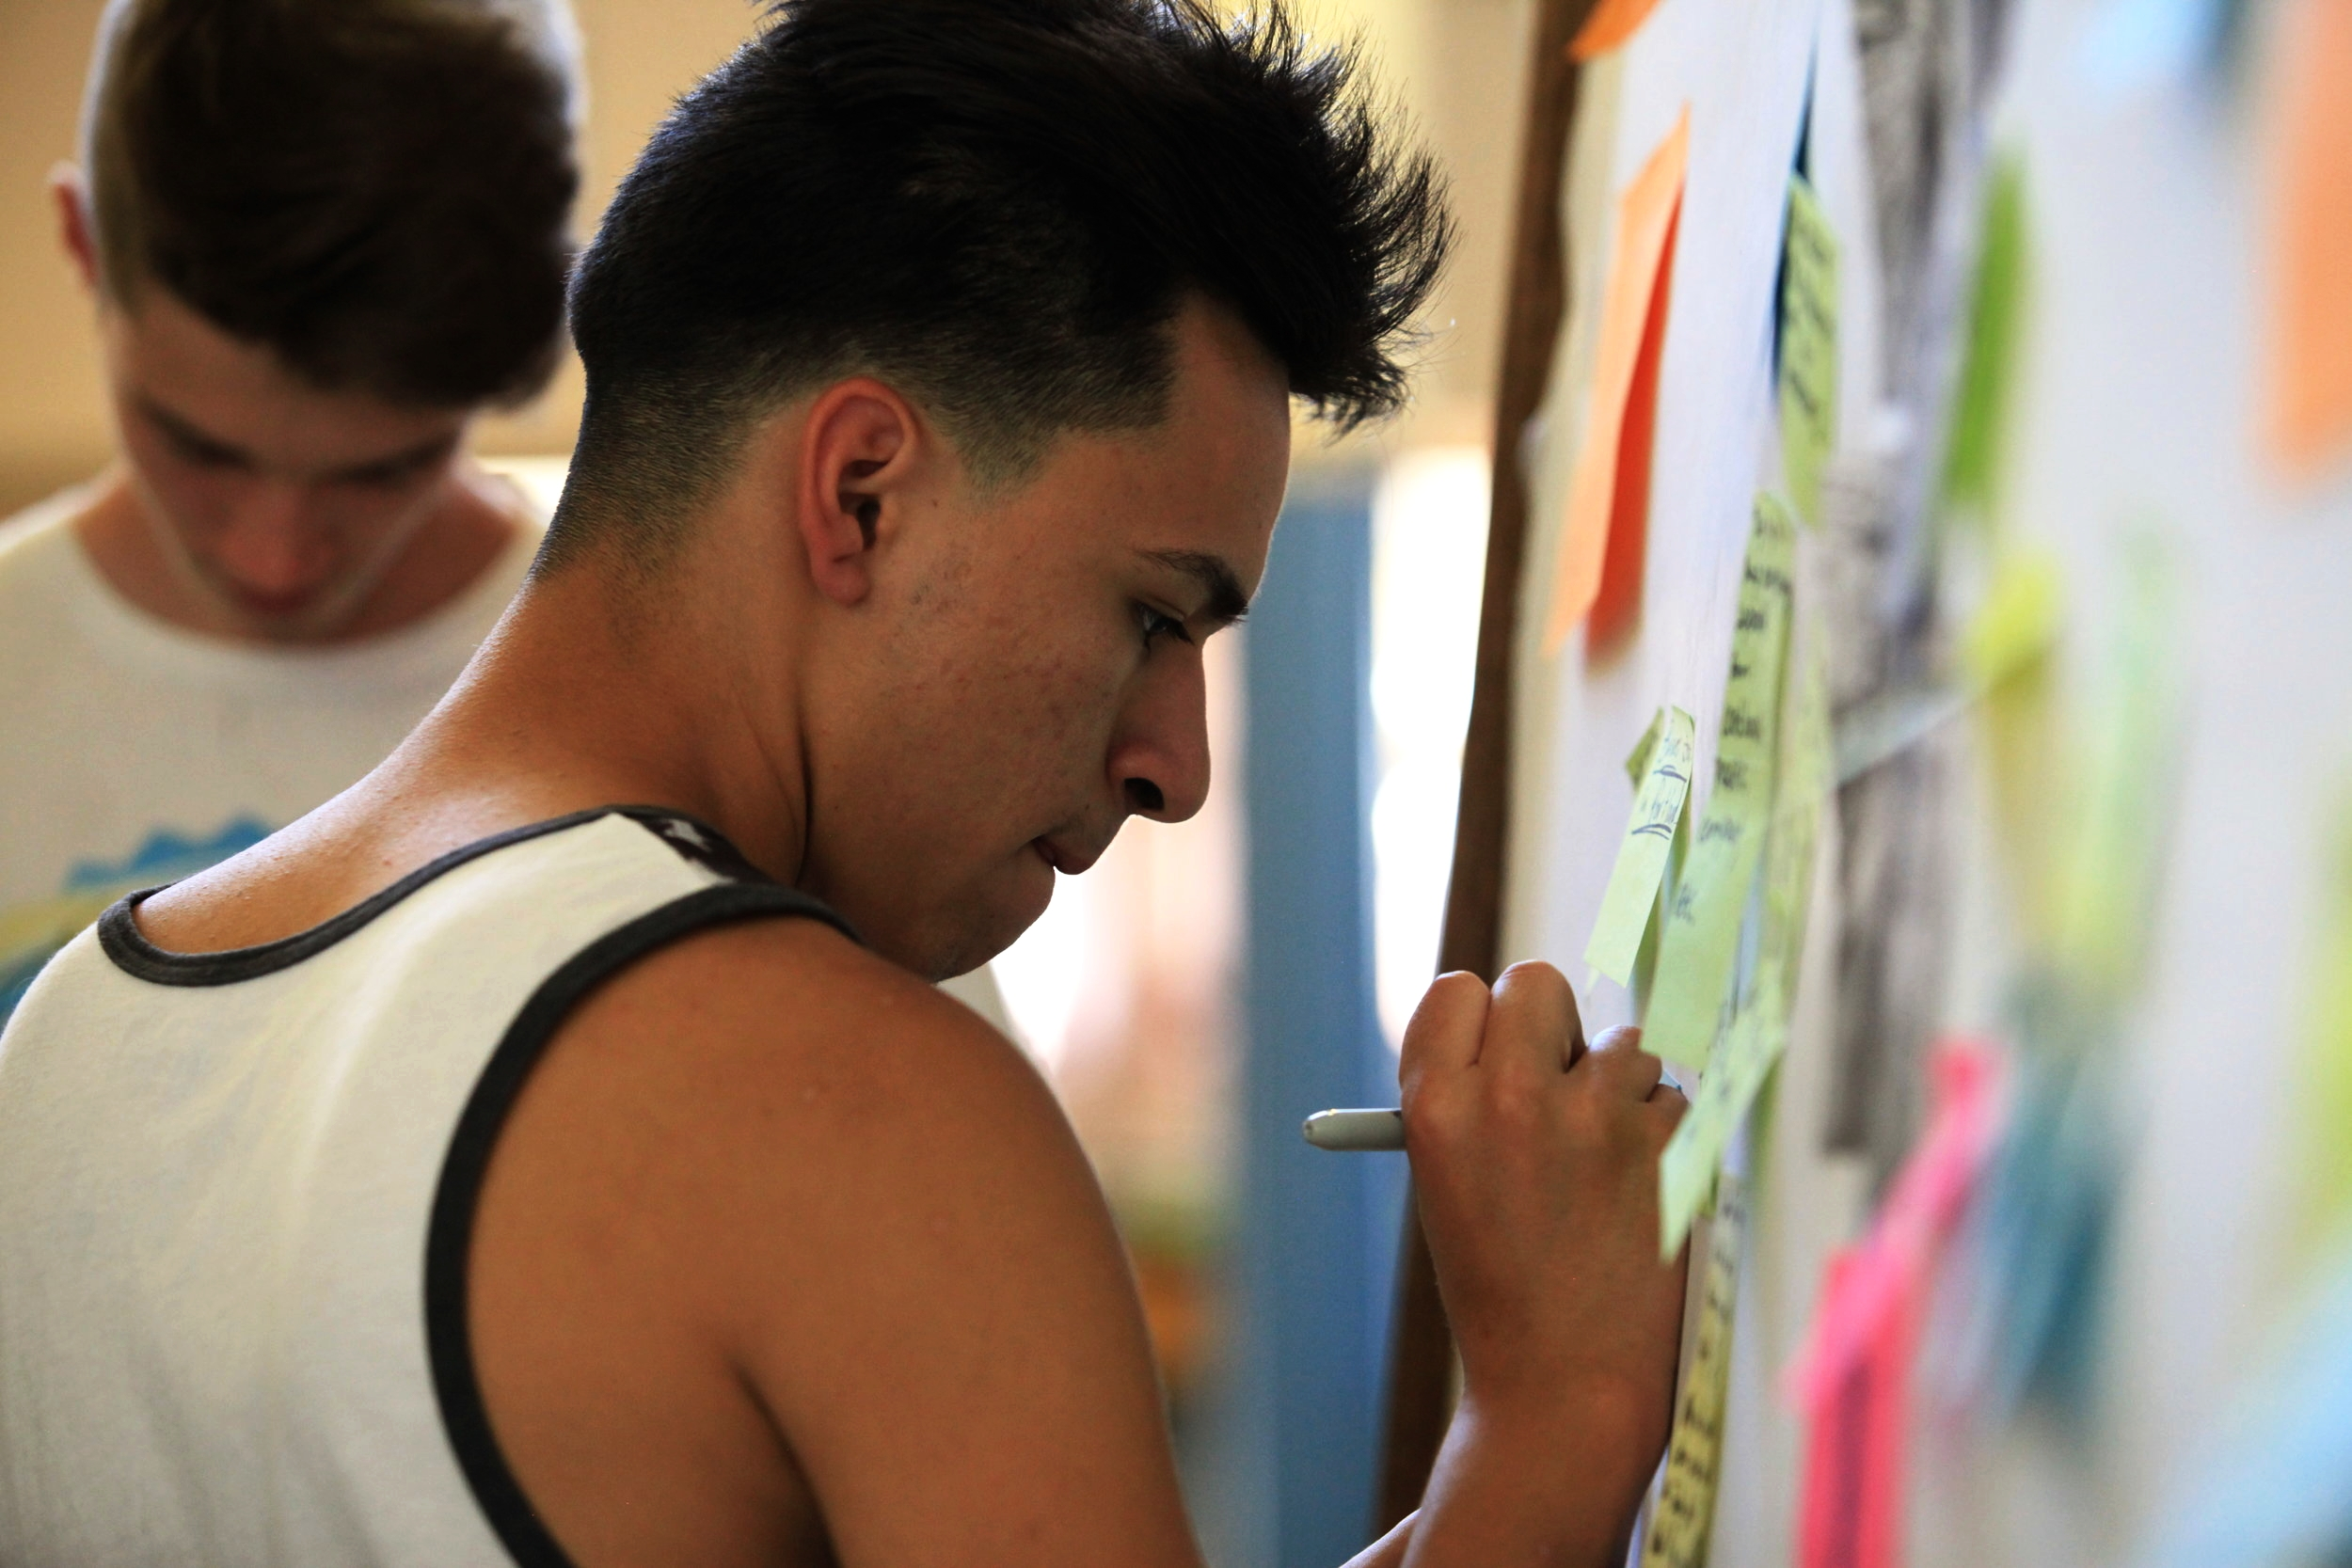 STUDENTS ARE THE CREATIVE PROBLEM-SOLVERS OF TOMORROW